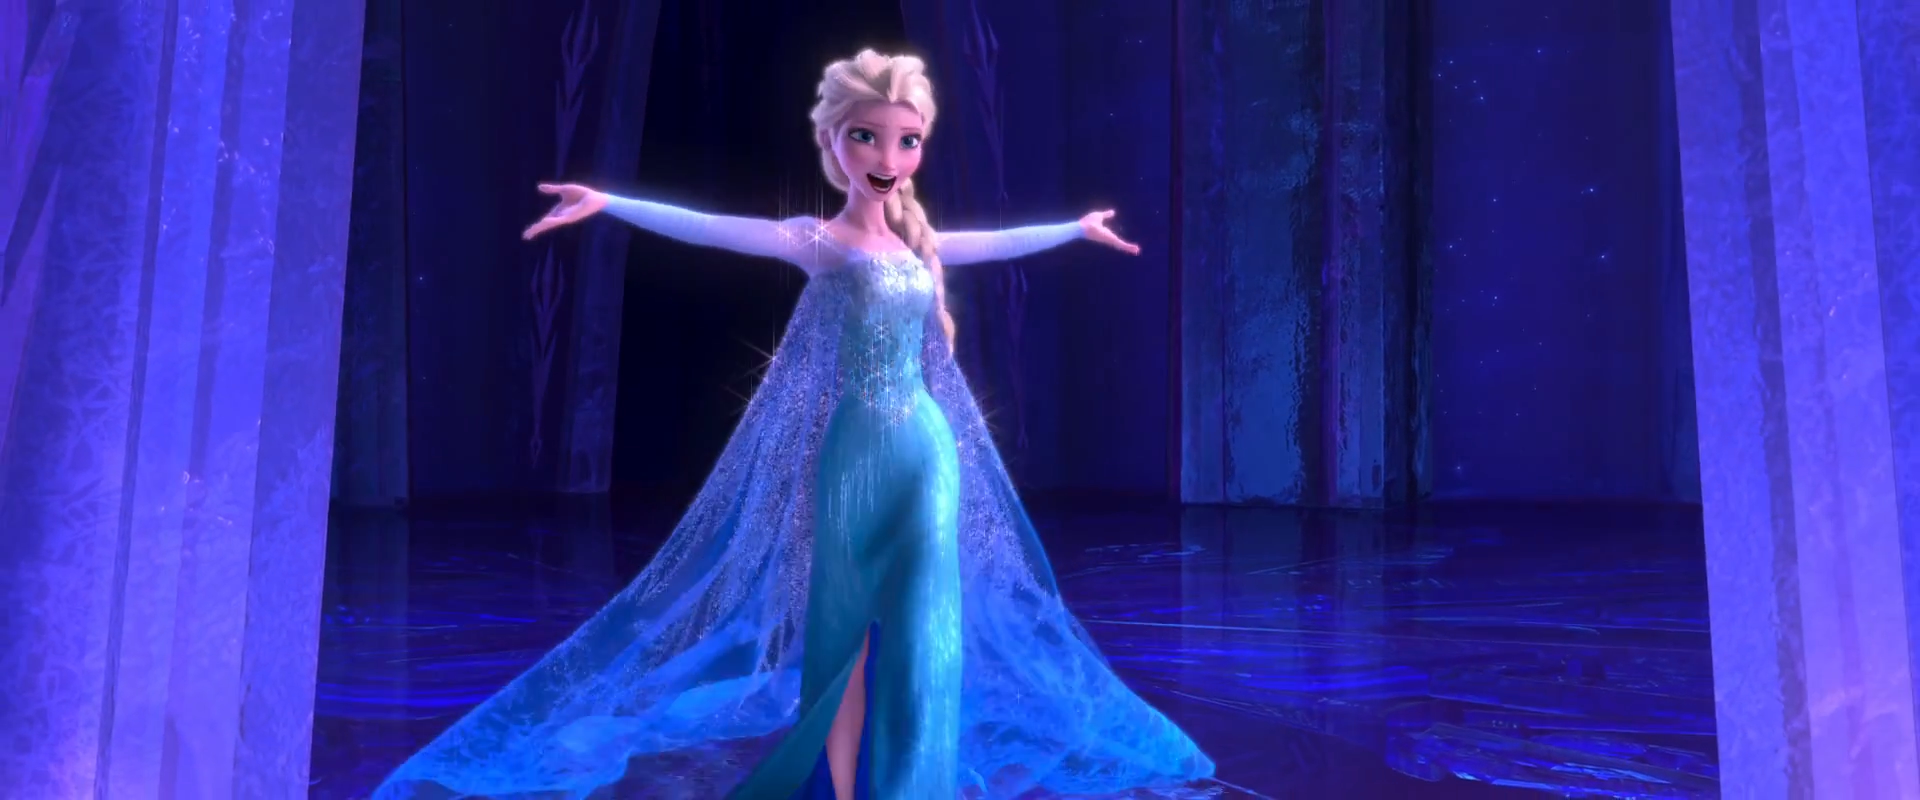 Let It Go Hd Screencaps Frozen Photo 36269779 Fanpop